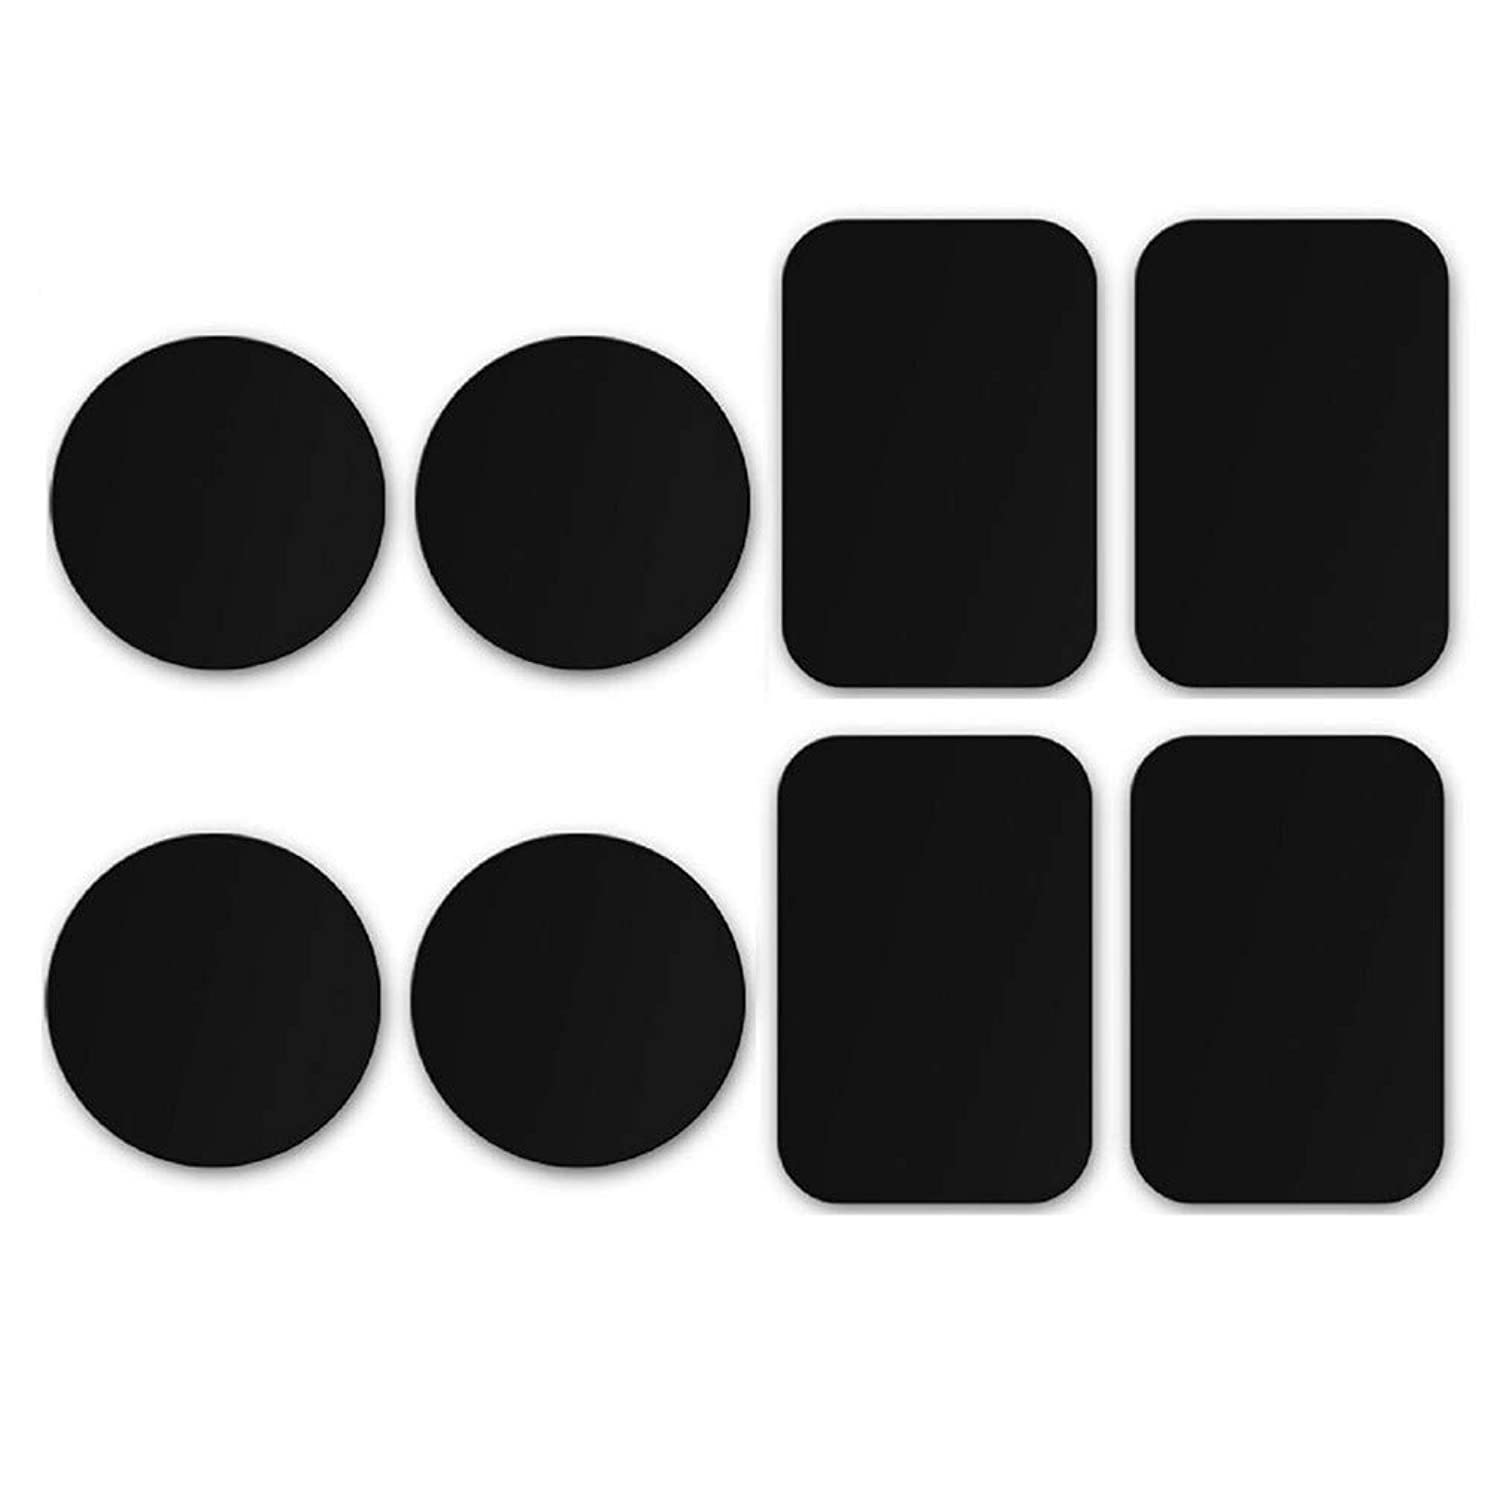 Gmgod????8-Pack Metal Plates Adhesive Sticker Replace for Magnetic Car Mount Phone Holder Black